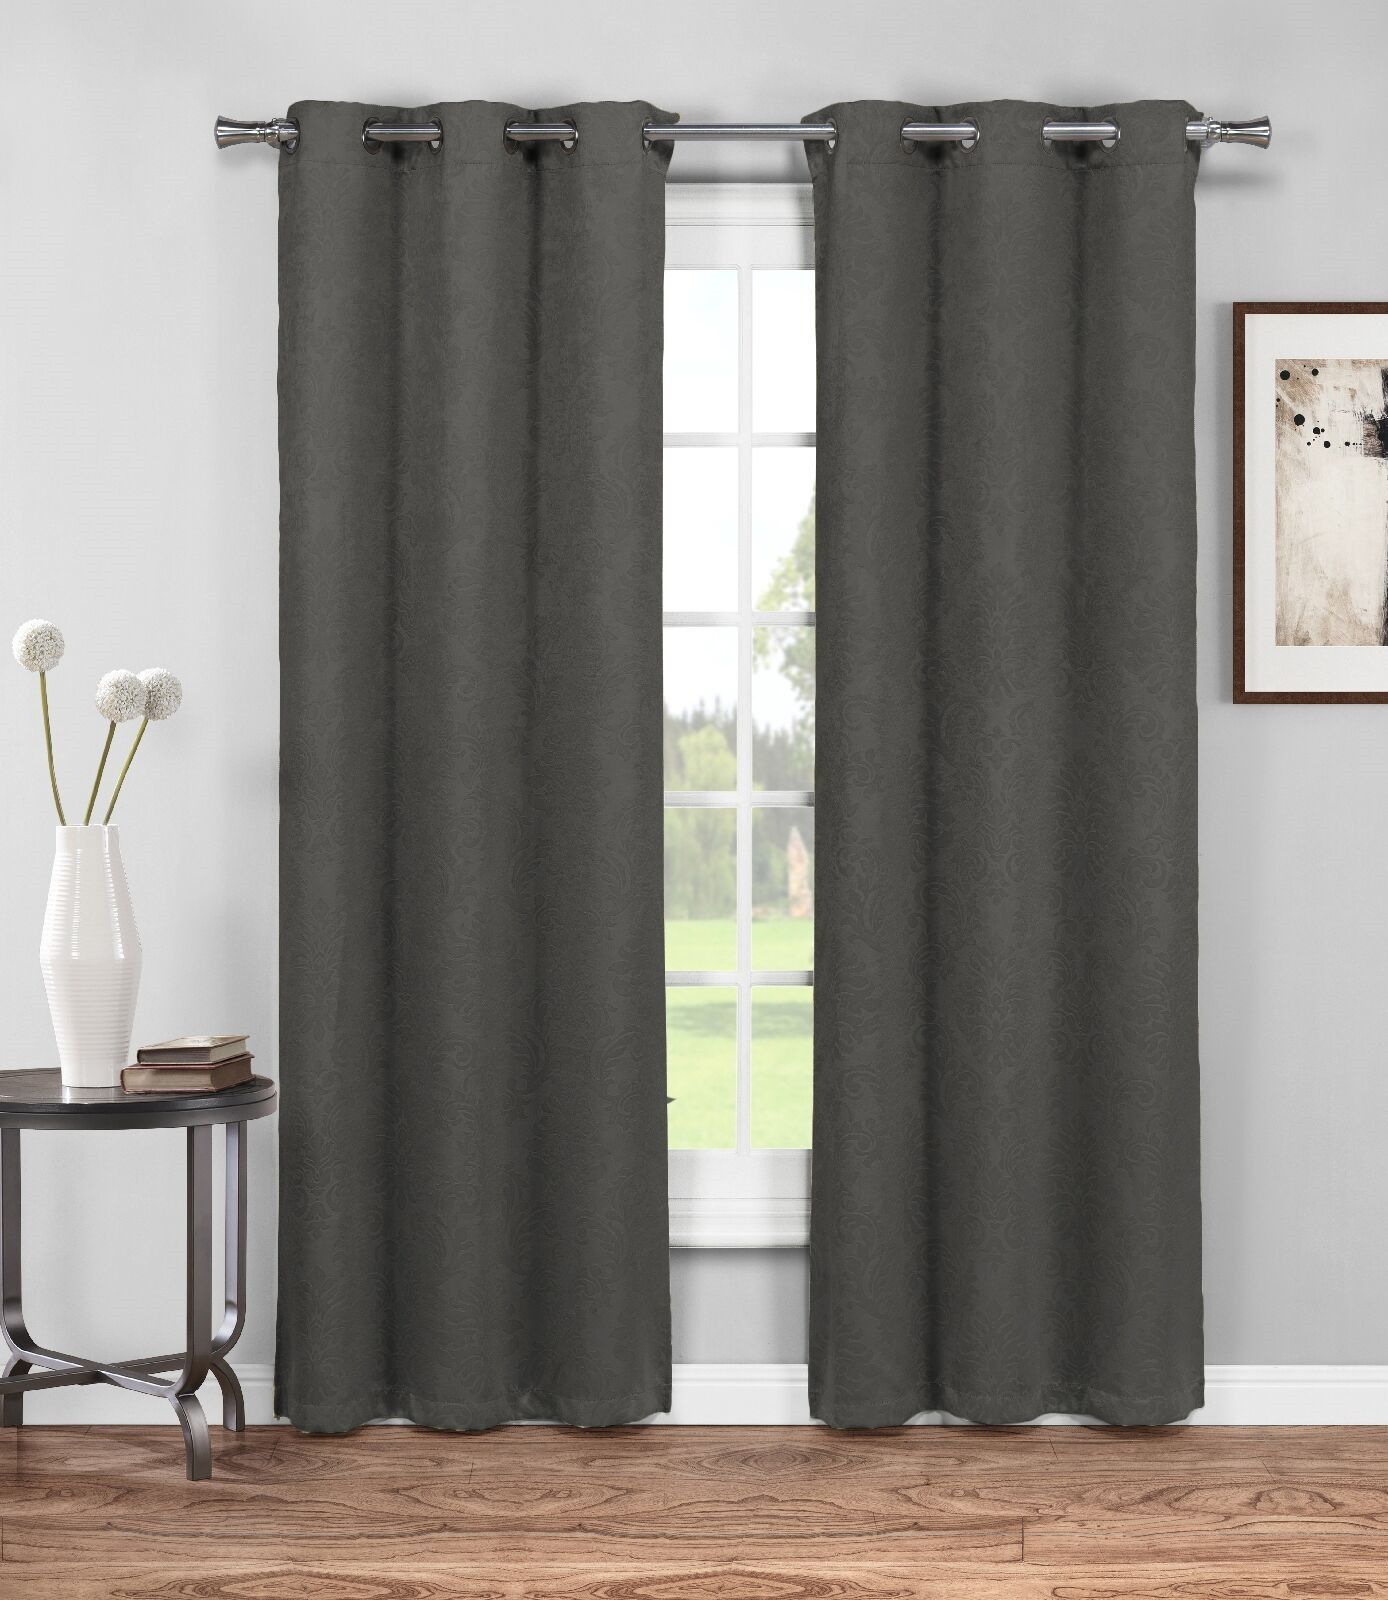 Warm Home Designs 1 Pair Of 38 Charcoal Grey Insulated Thermal Blackout Energy Efficient Curtains Energy Efficient Curtains Curtains Living Room House Design